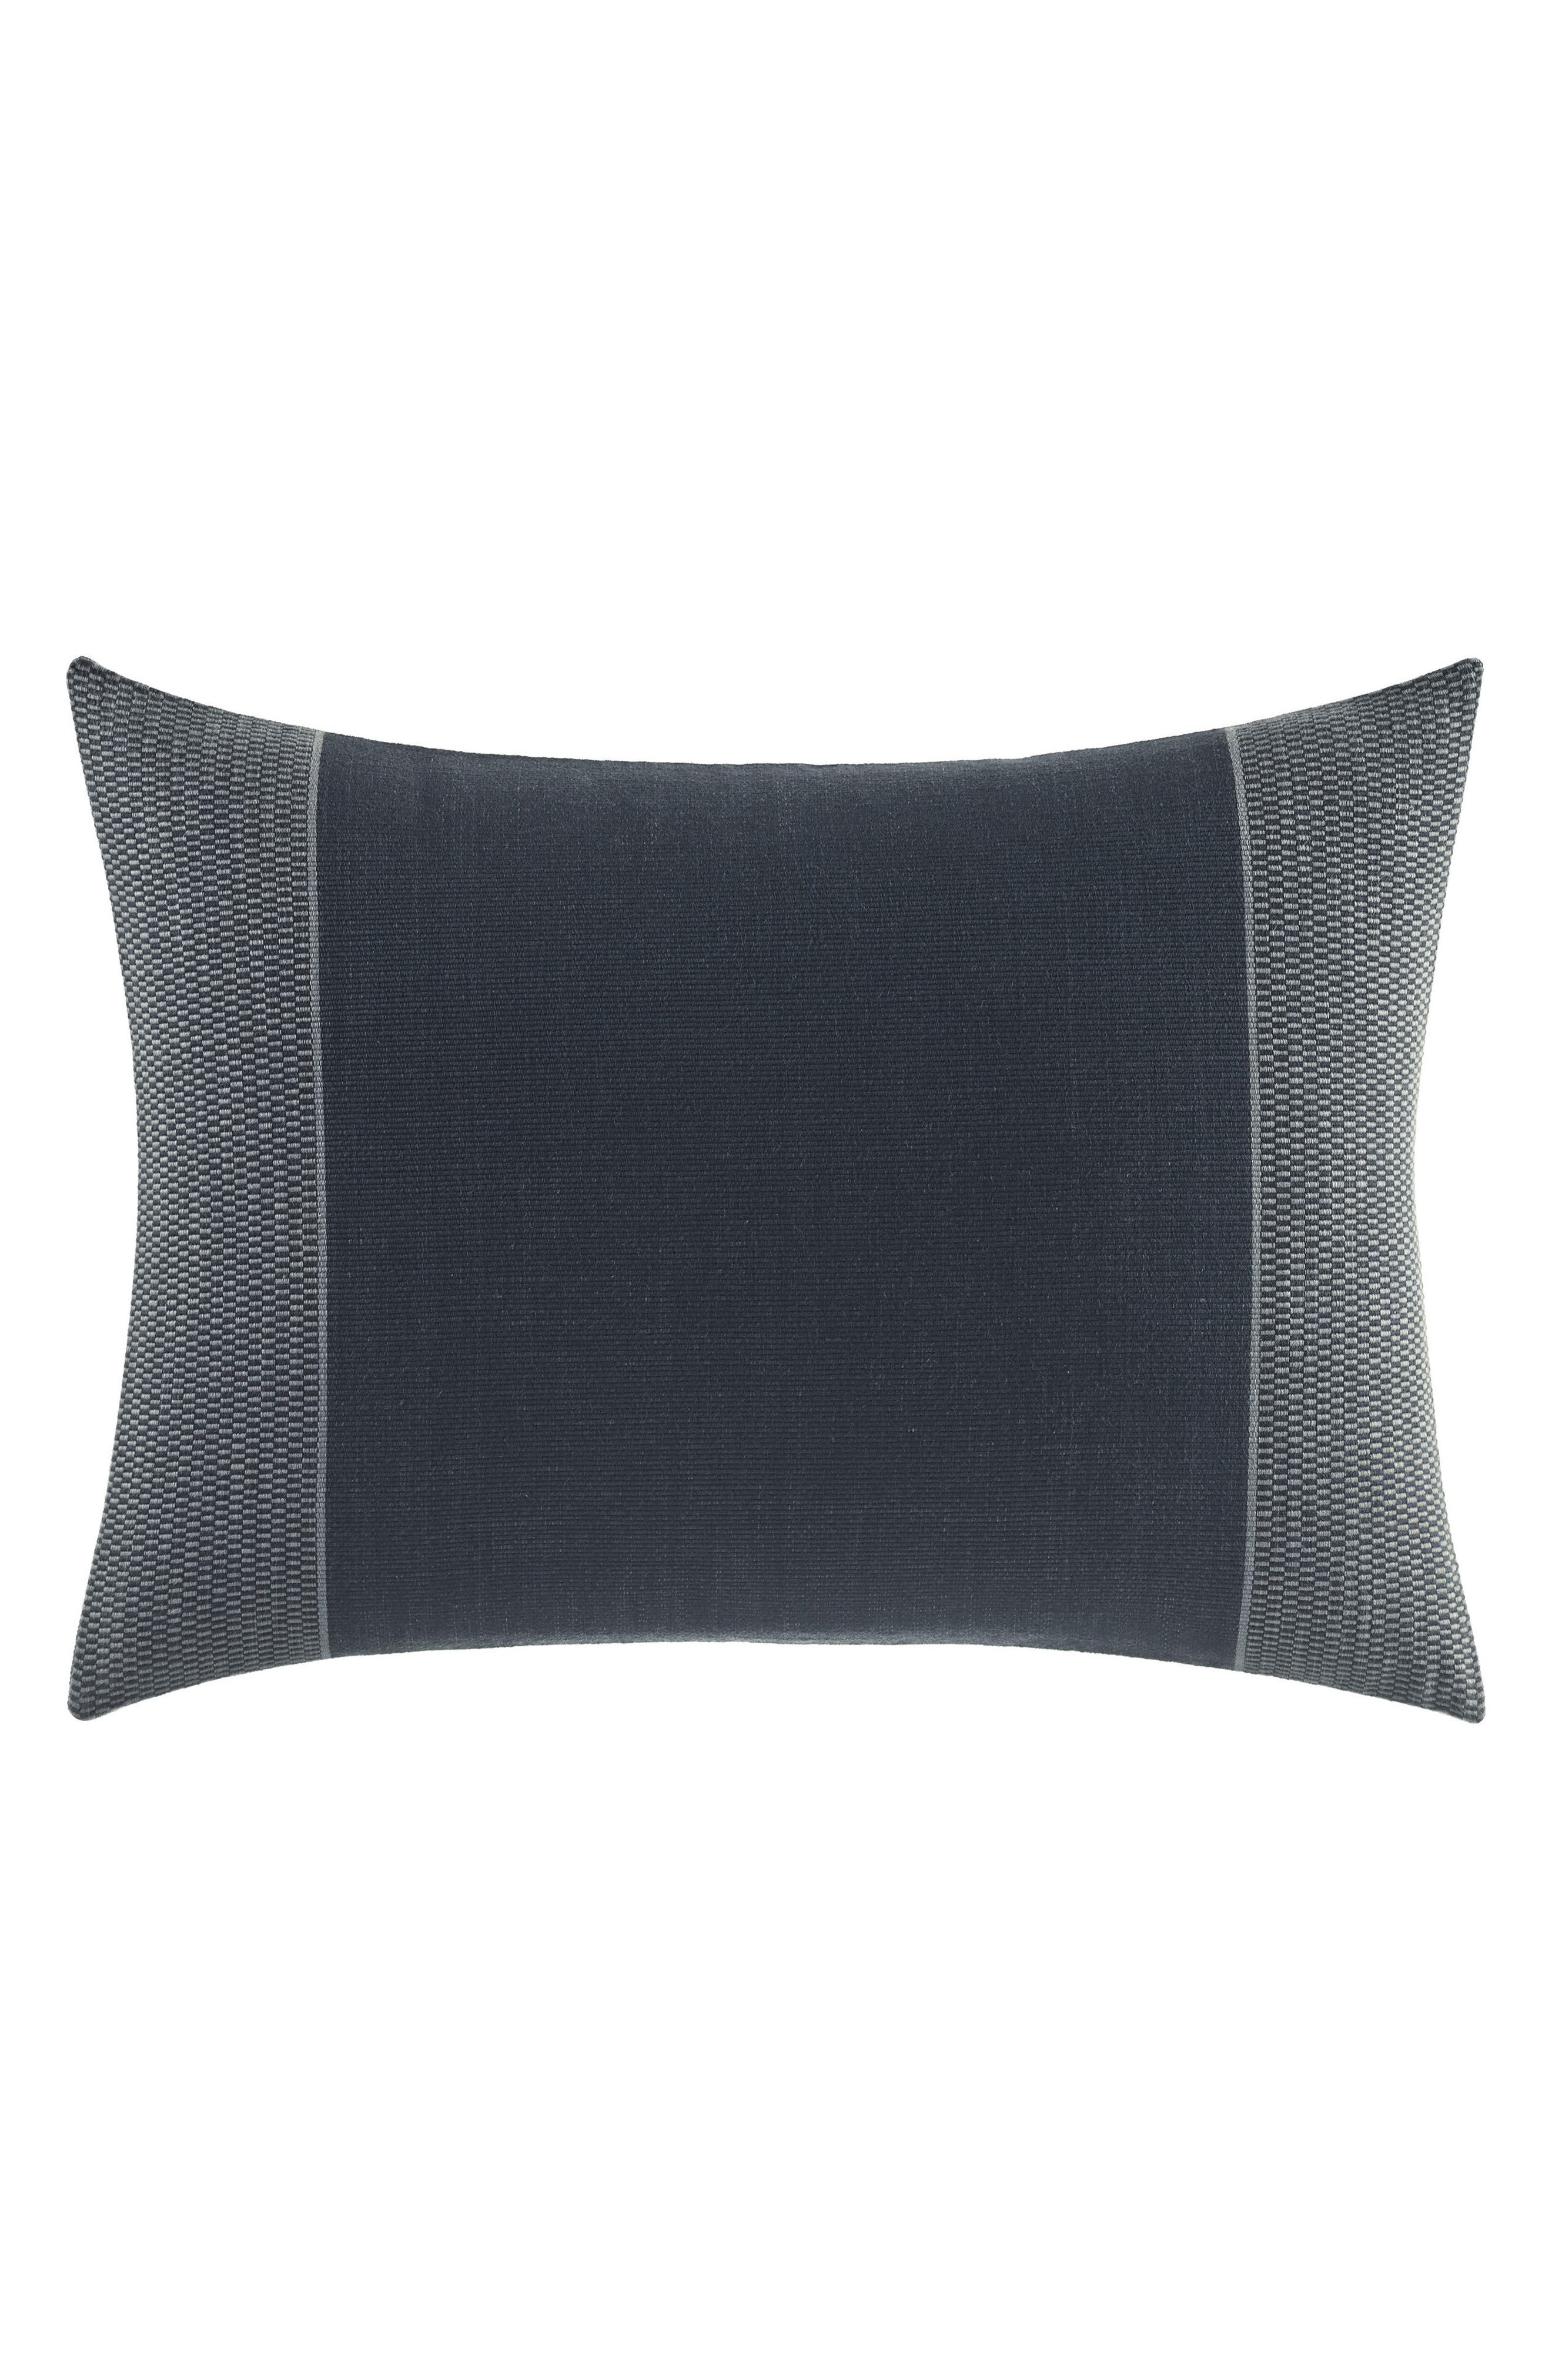 Nomad Accent Pillow,                             Main thumbnail 1, color,                             NAVY